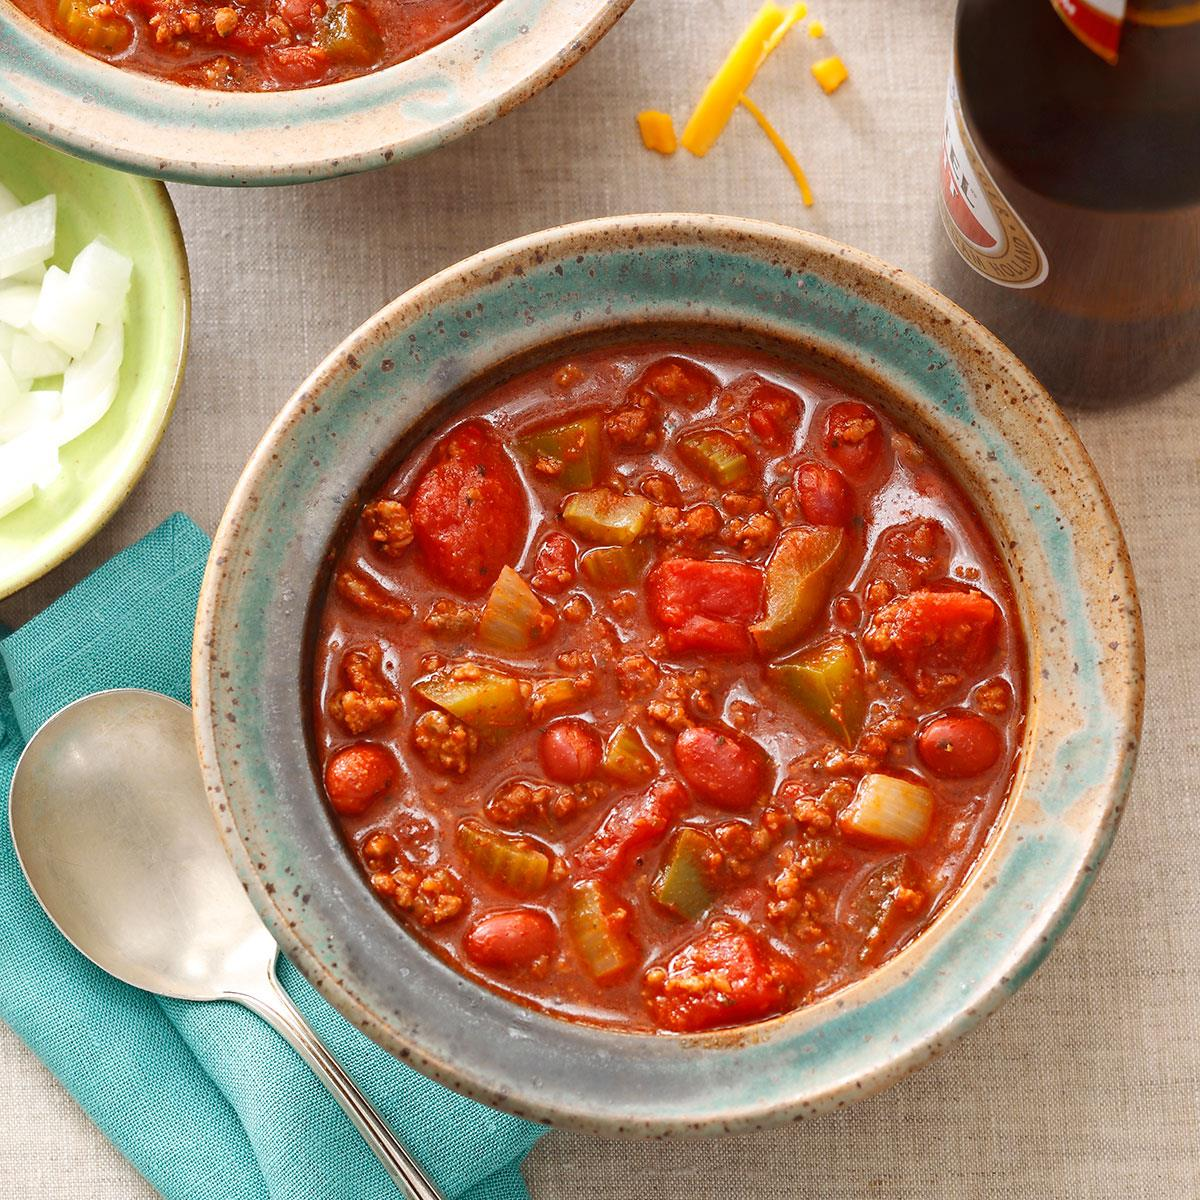 Ground Beef Chili Recipe How To Make It Taste Of Home